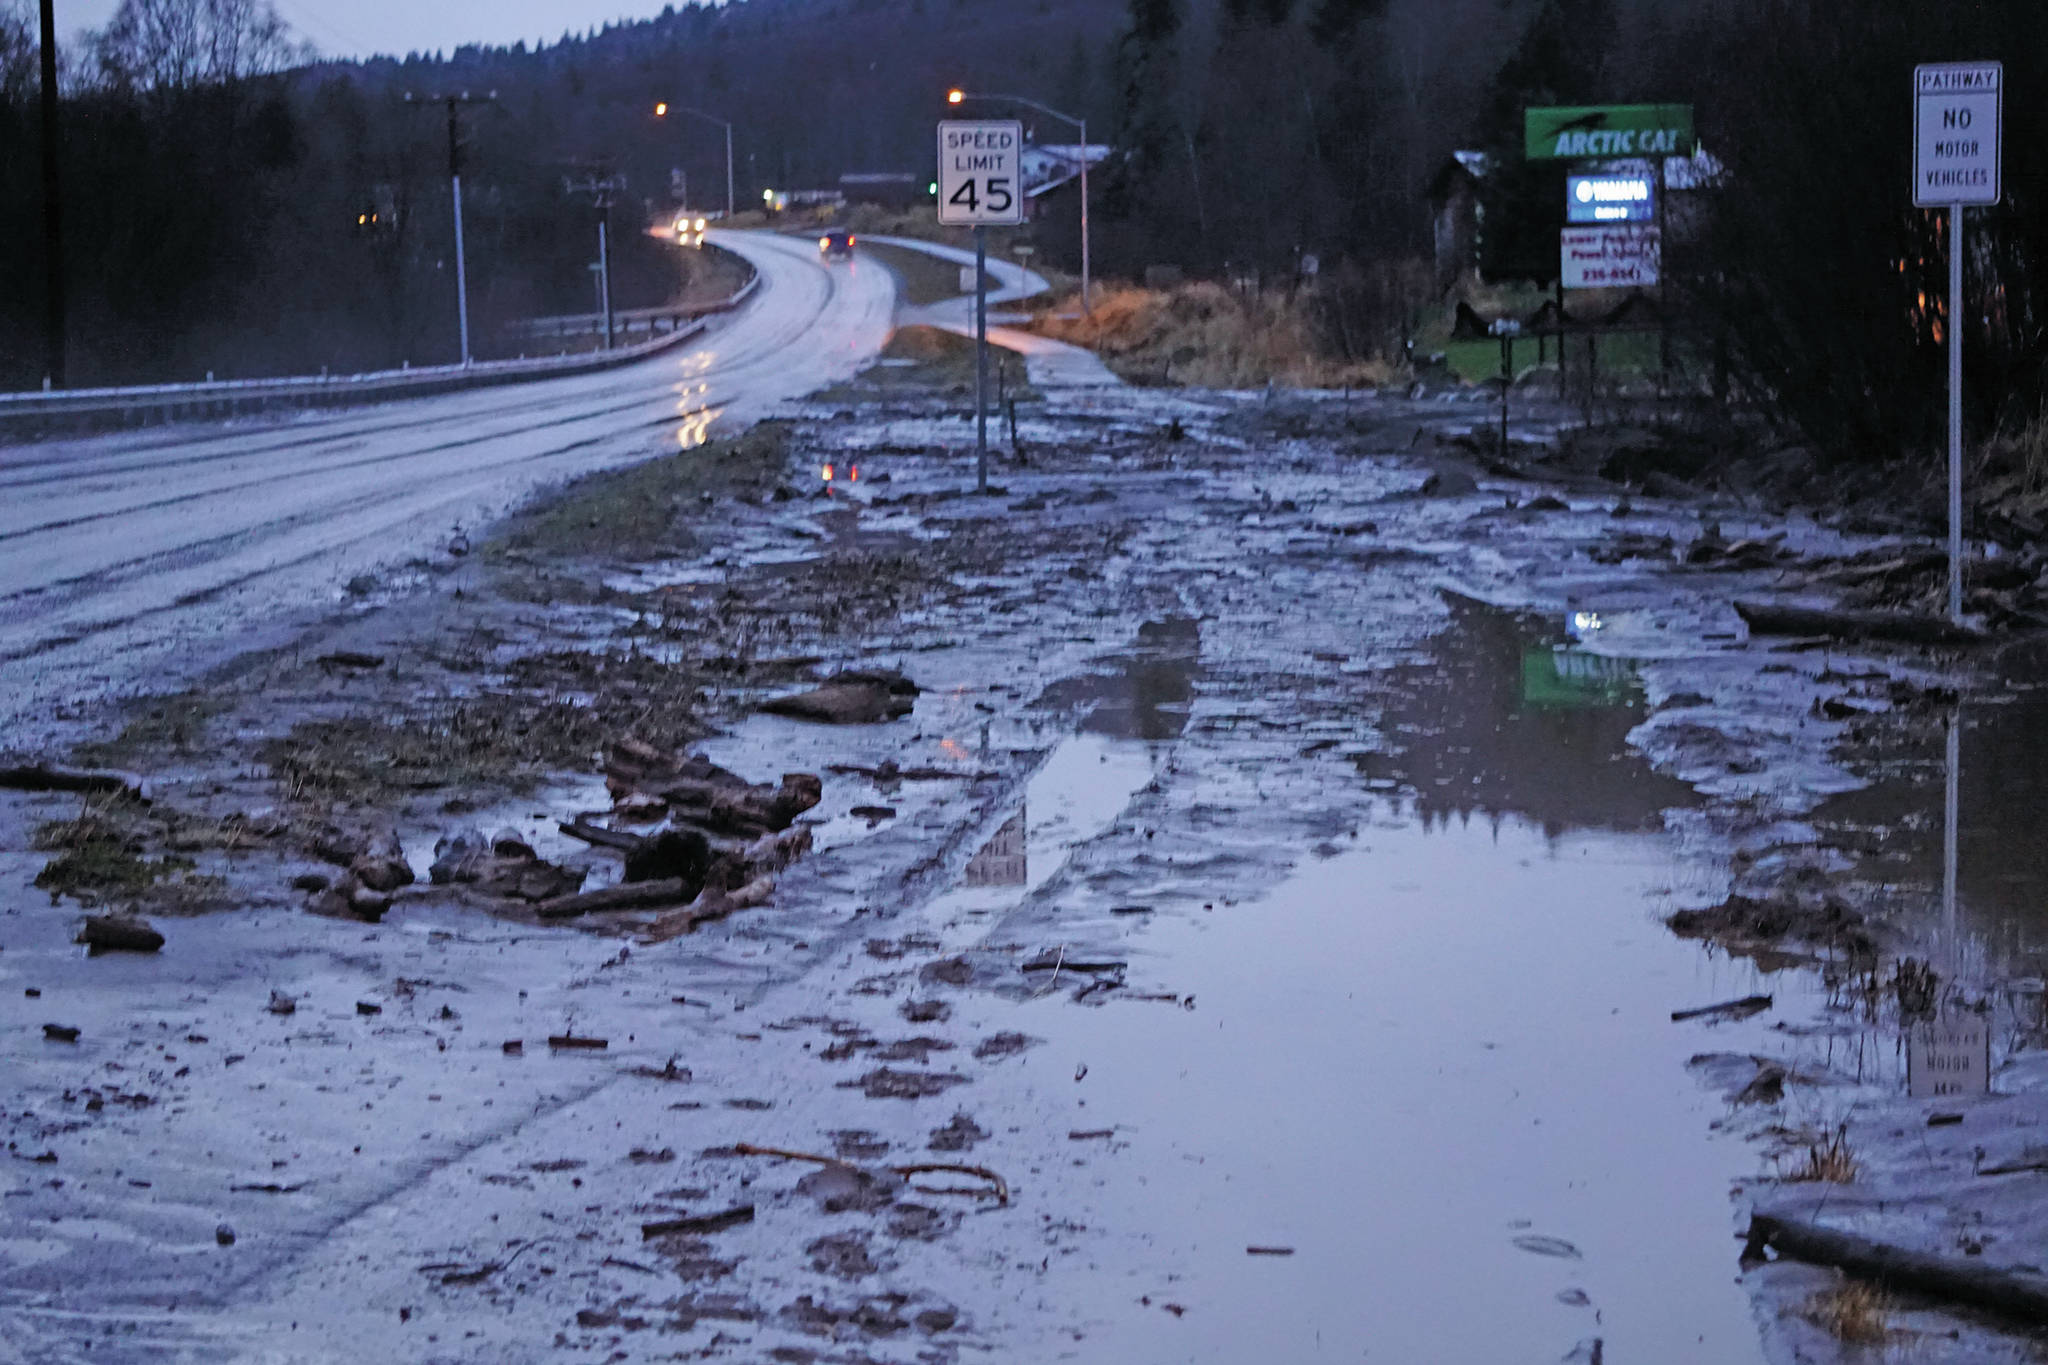 Mud and debris is washed up at Bear Creek near East End Road on Monday afternoon, Dec. 9, 2019, in Homer, Alaska. Bear Creek crosses East End Road near Bear Creek Drive and overflowed the creek banks. (Photo by Michael Armstrong/Homer News)